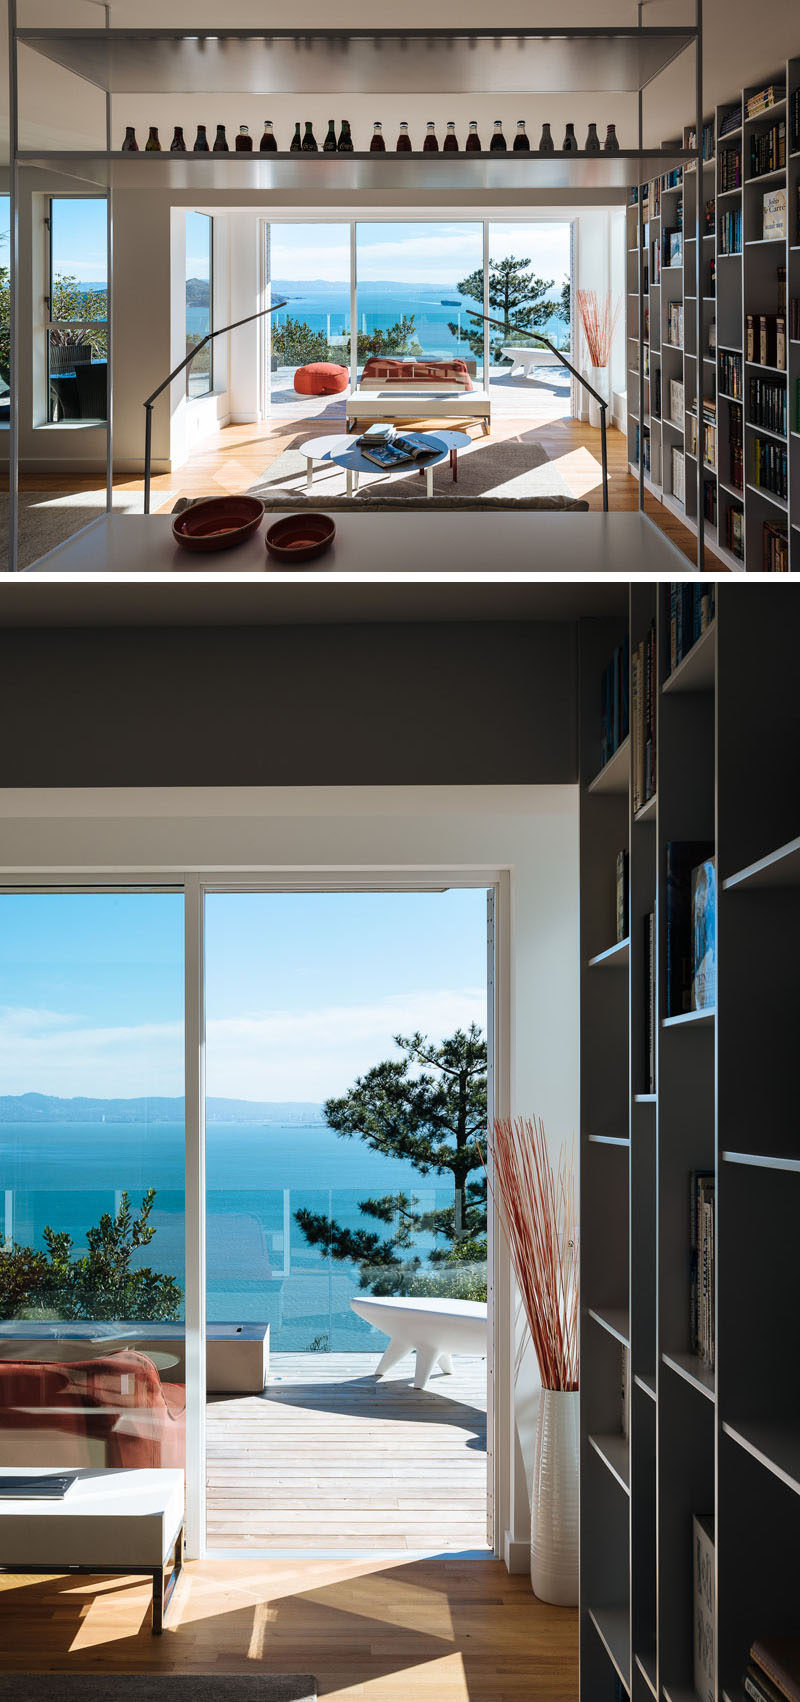 This house has a library with a sitting area that opens up to a balcony. #LivingRoom #Library